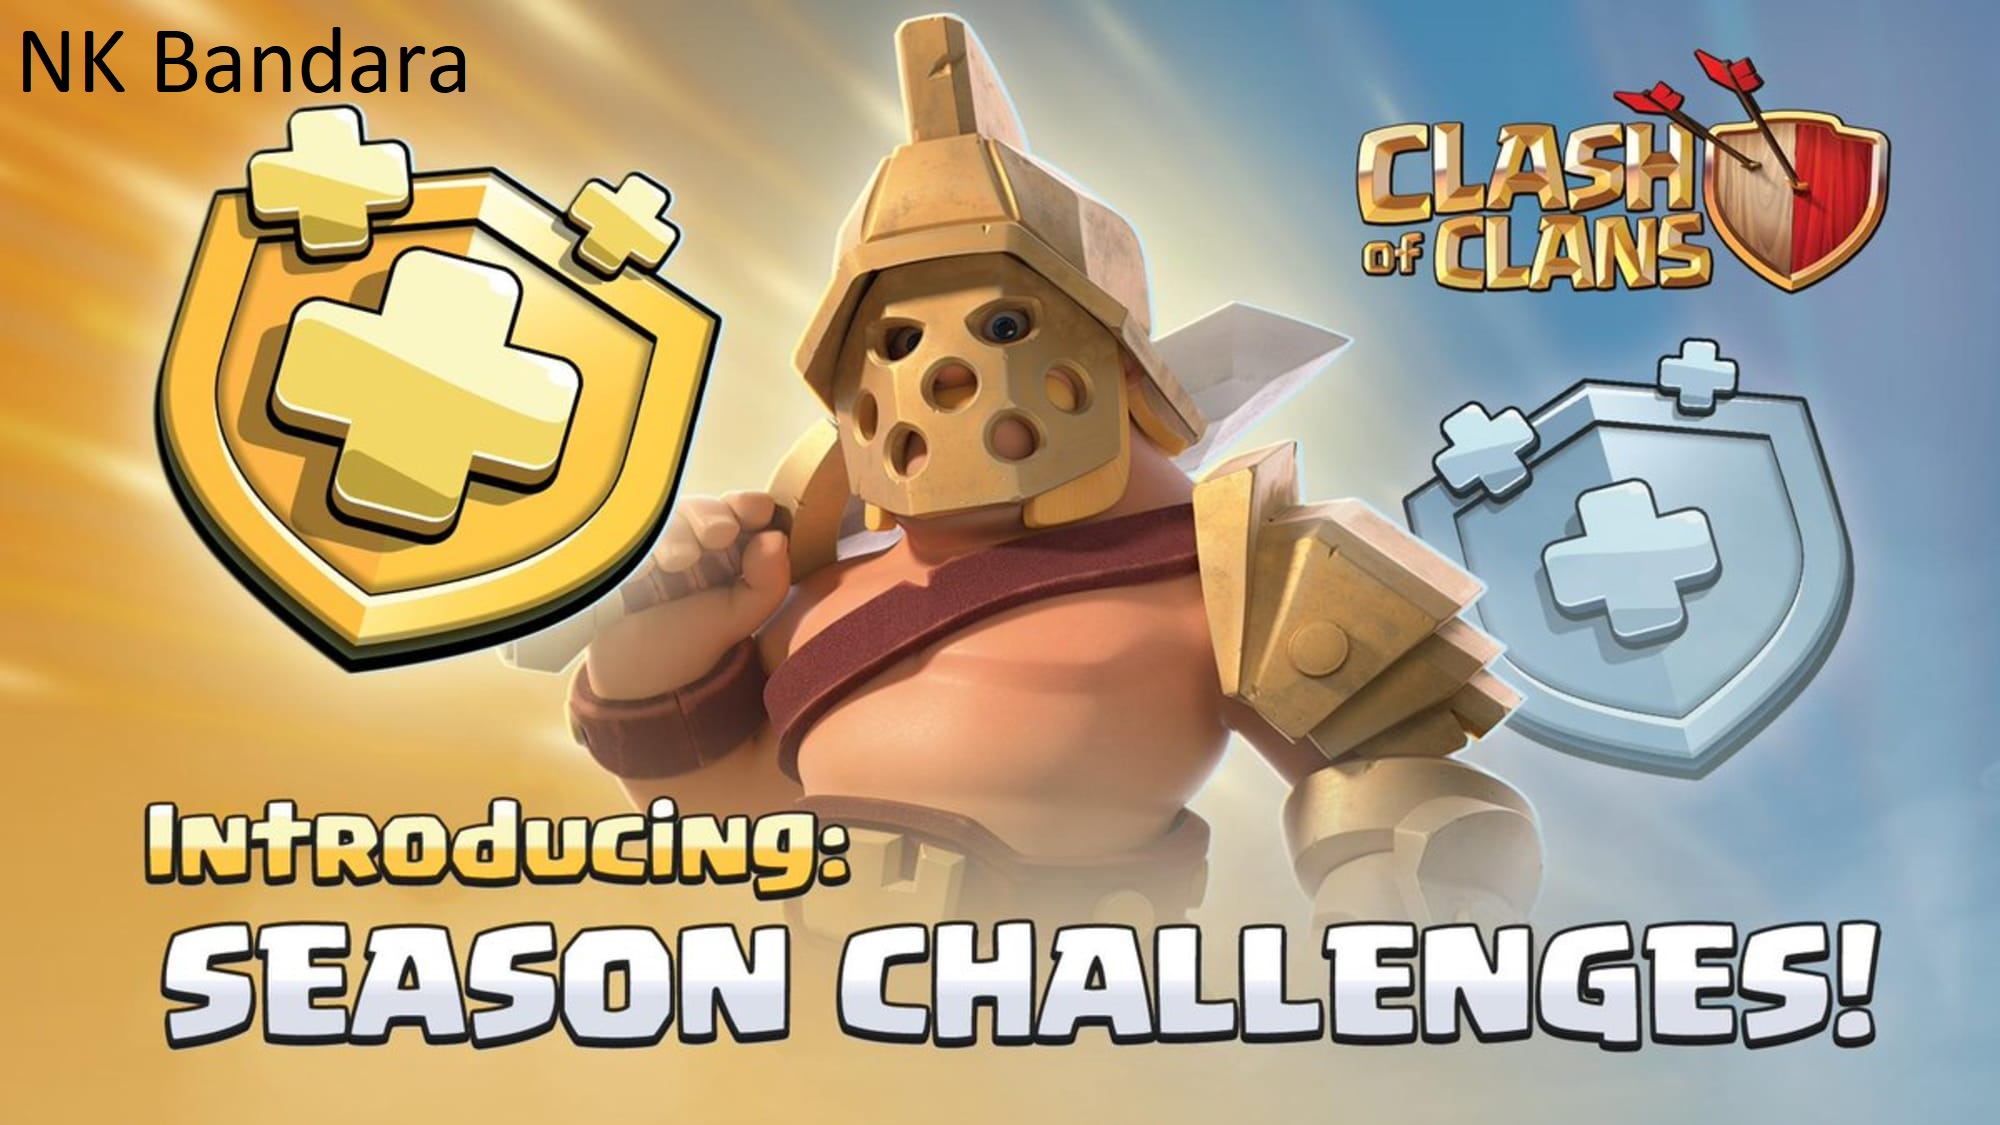 I will complete your season challengers and clan game